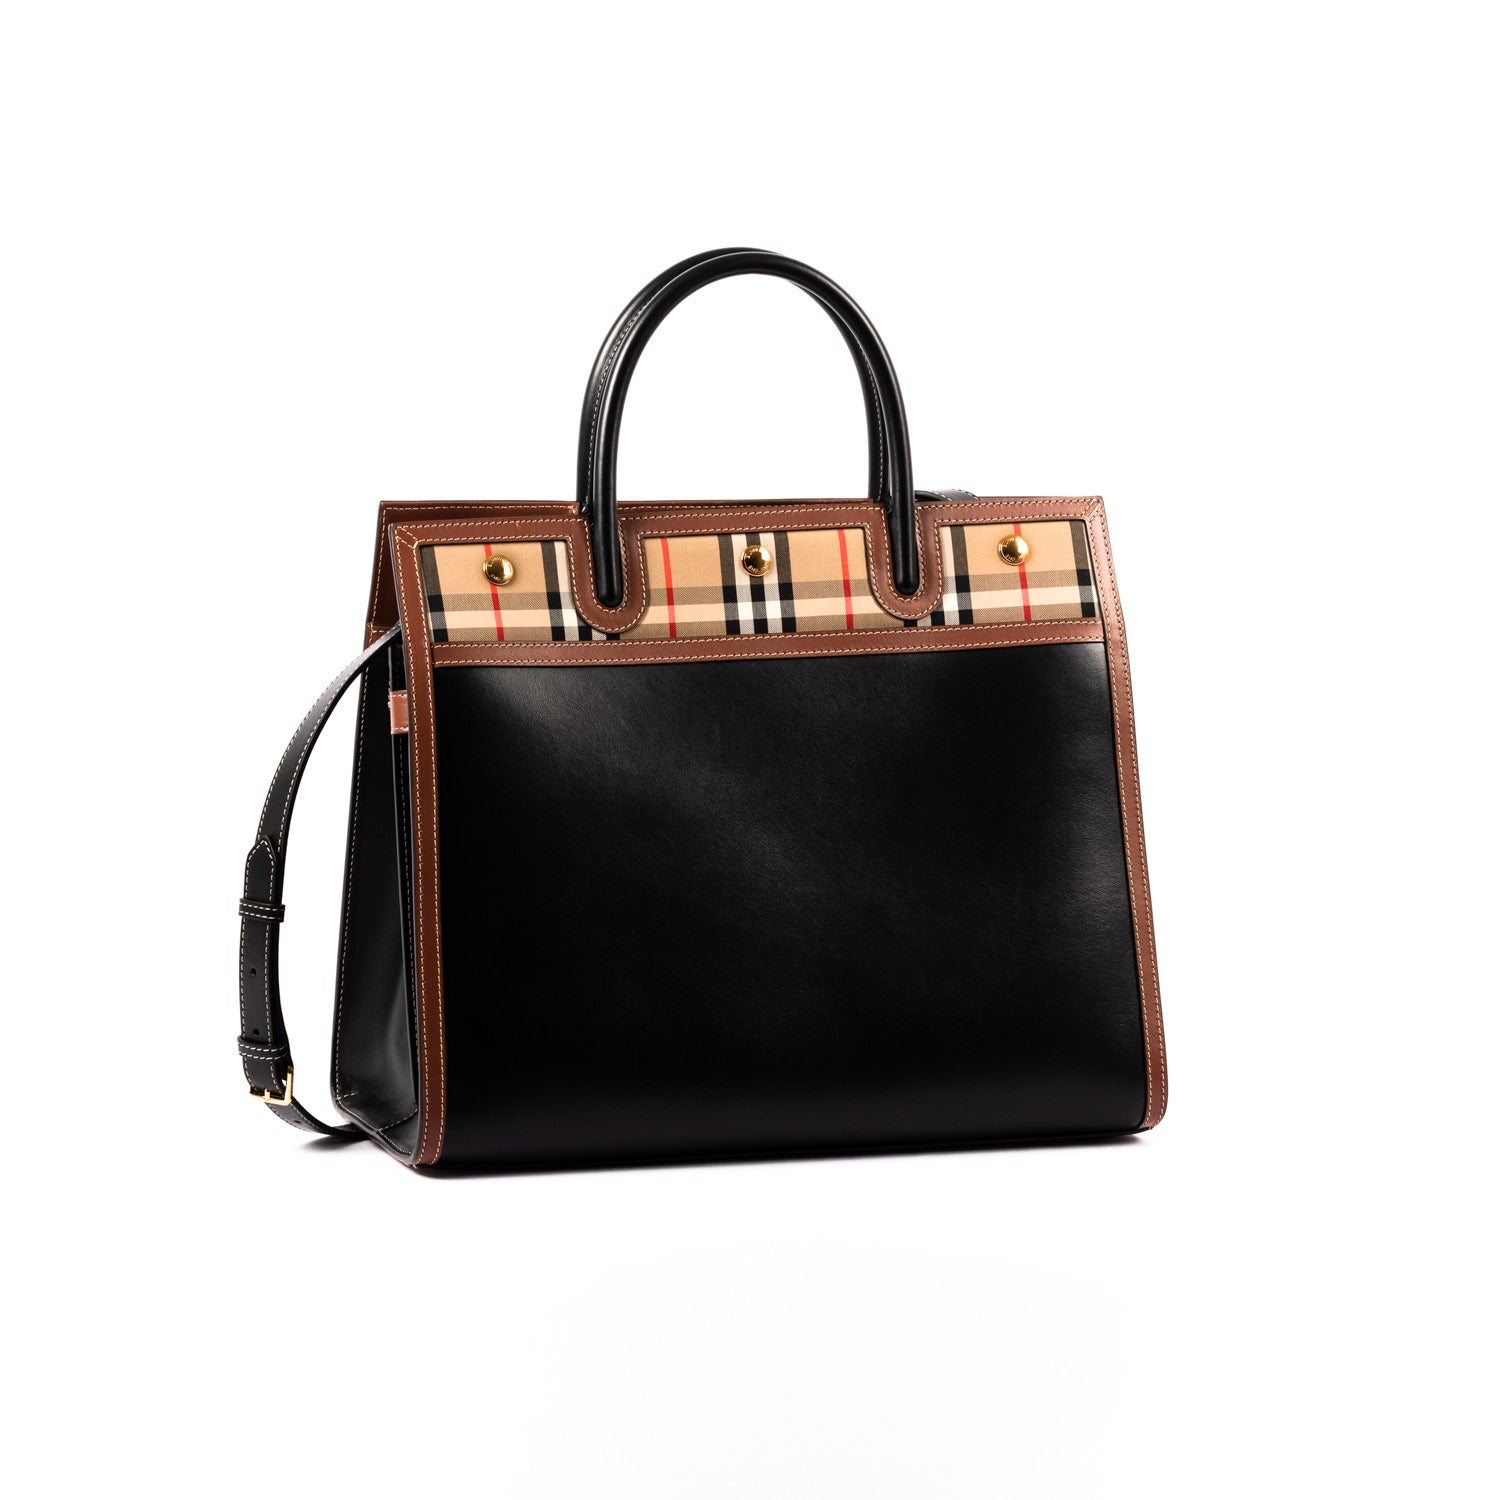 Burberry Vintage Check Medium Title Tote | Shop BURBERRY Online India